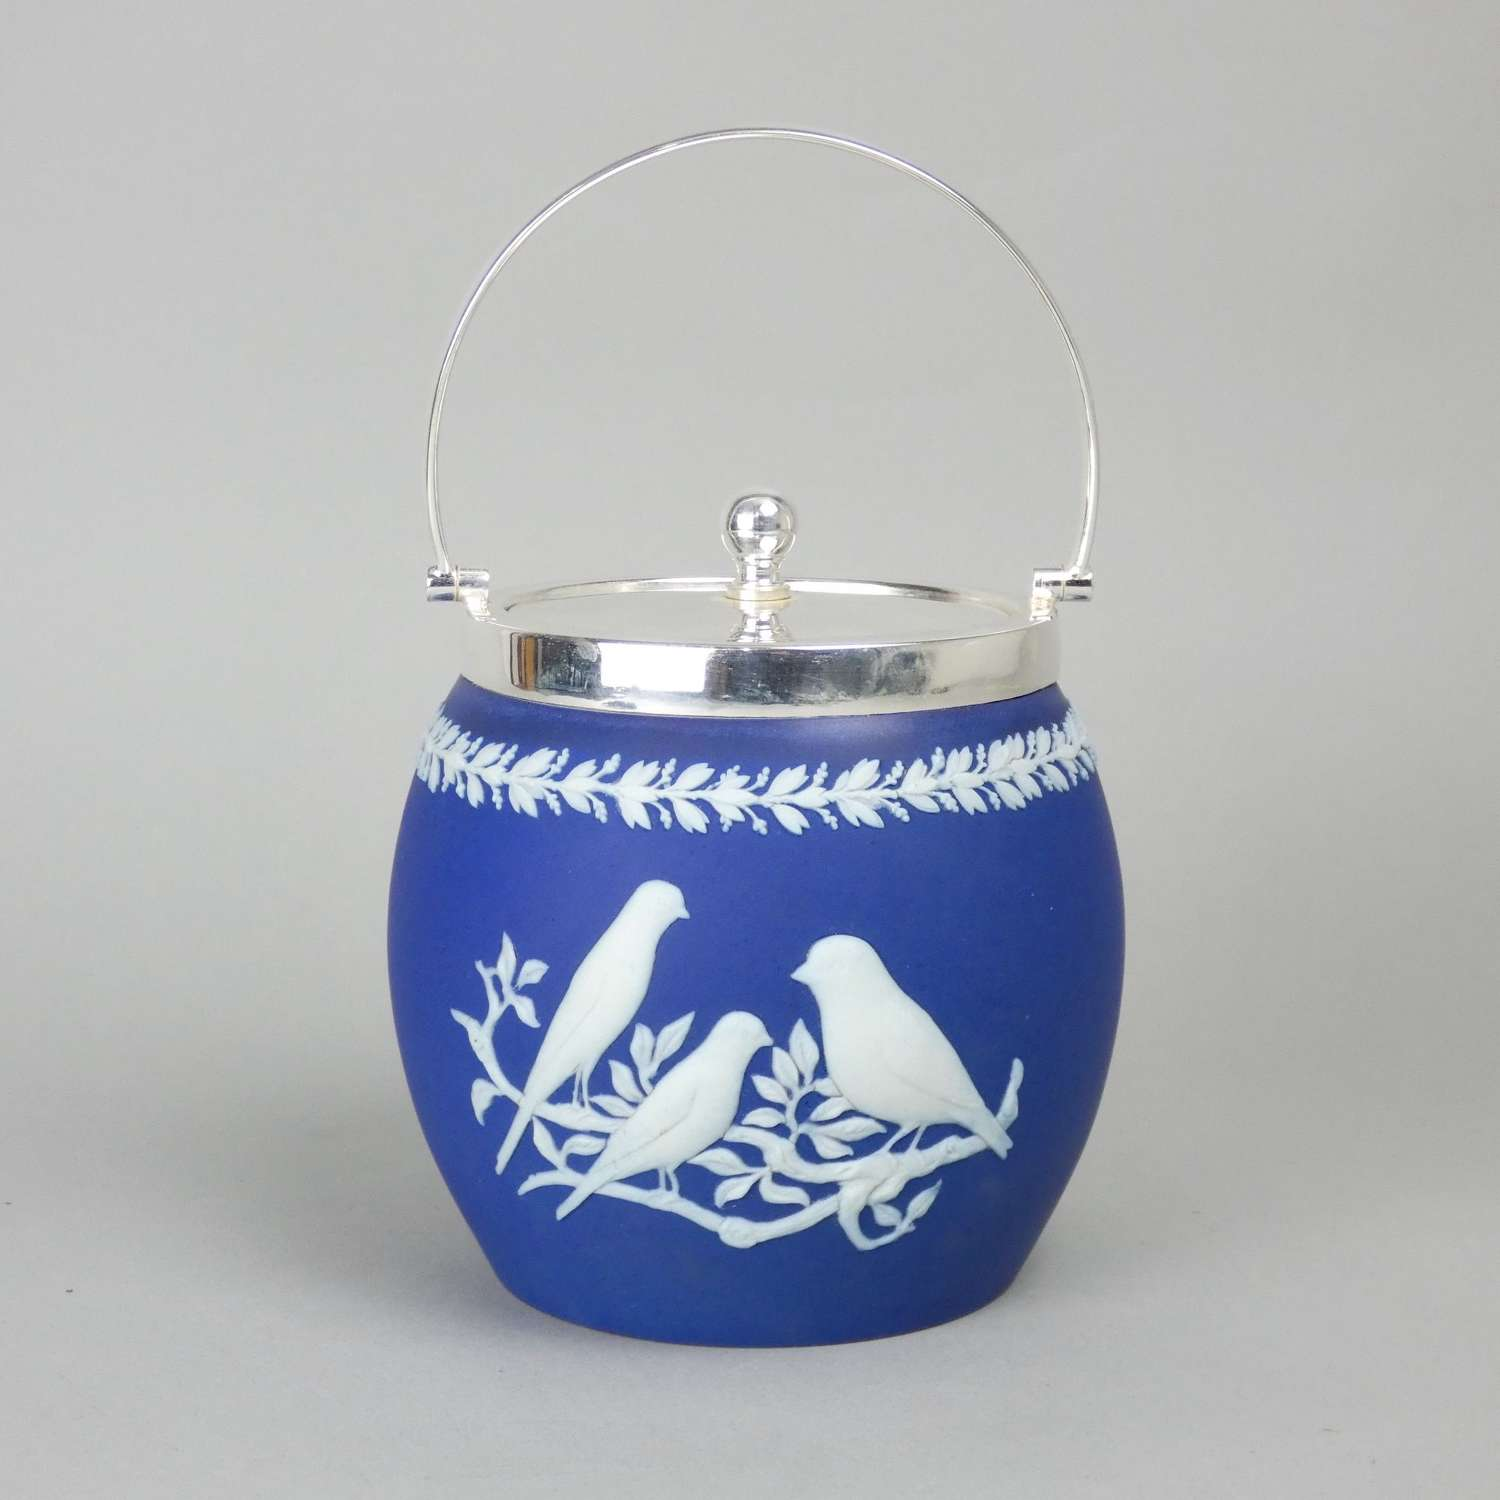 Wedgwood biscuit barrel with bird relief